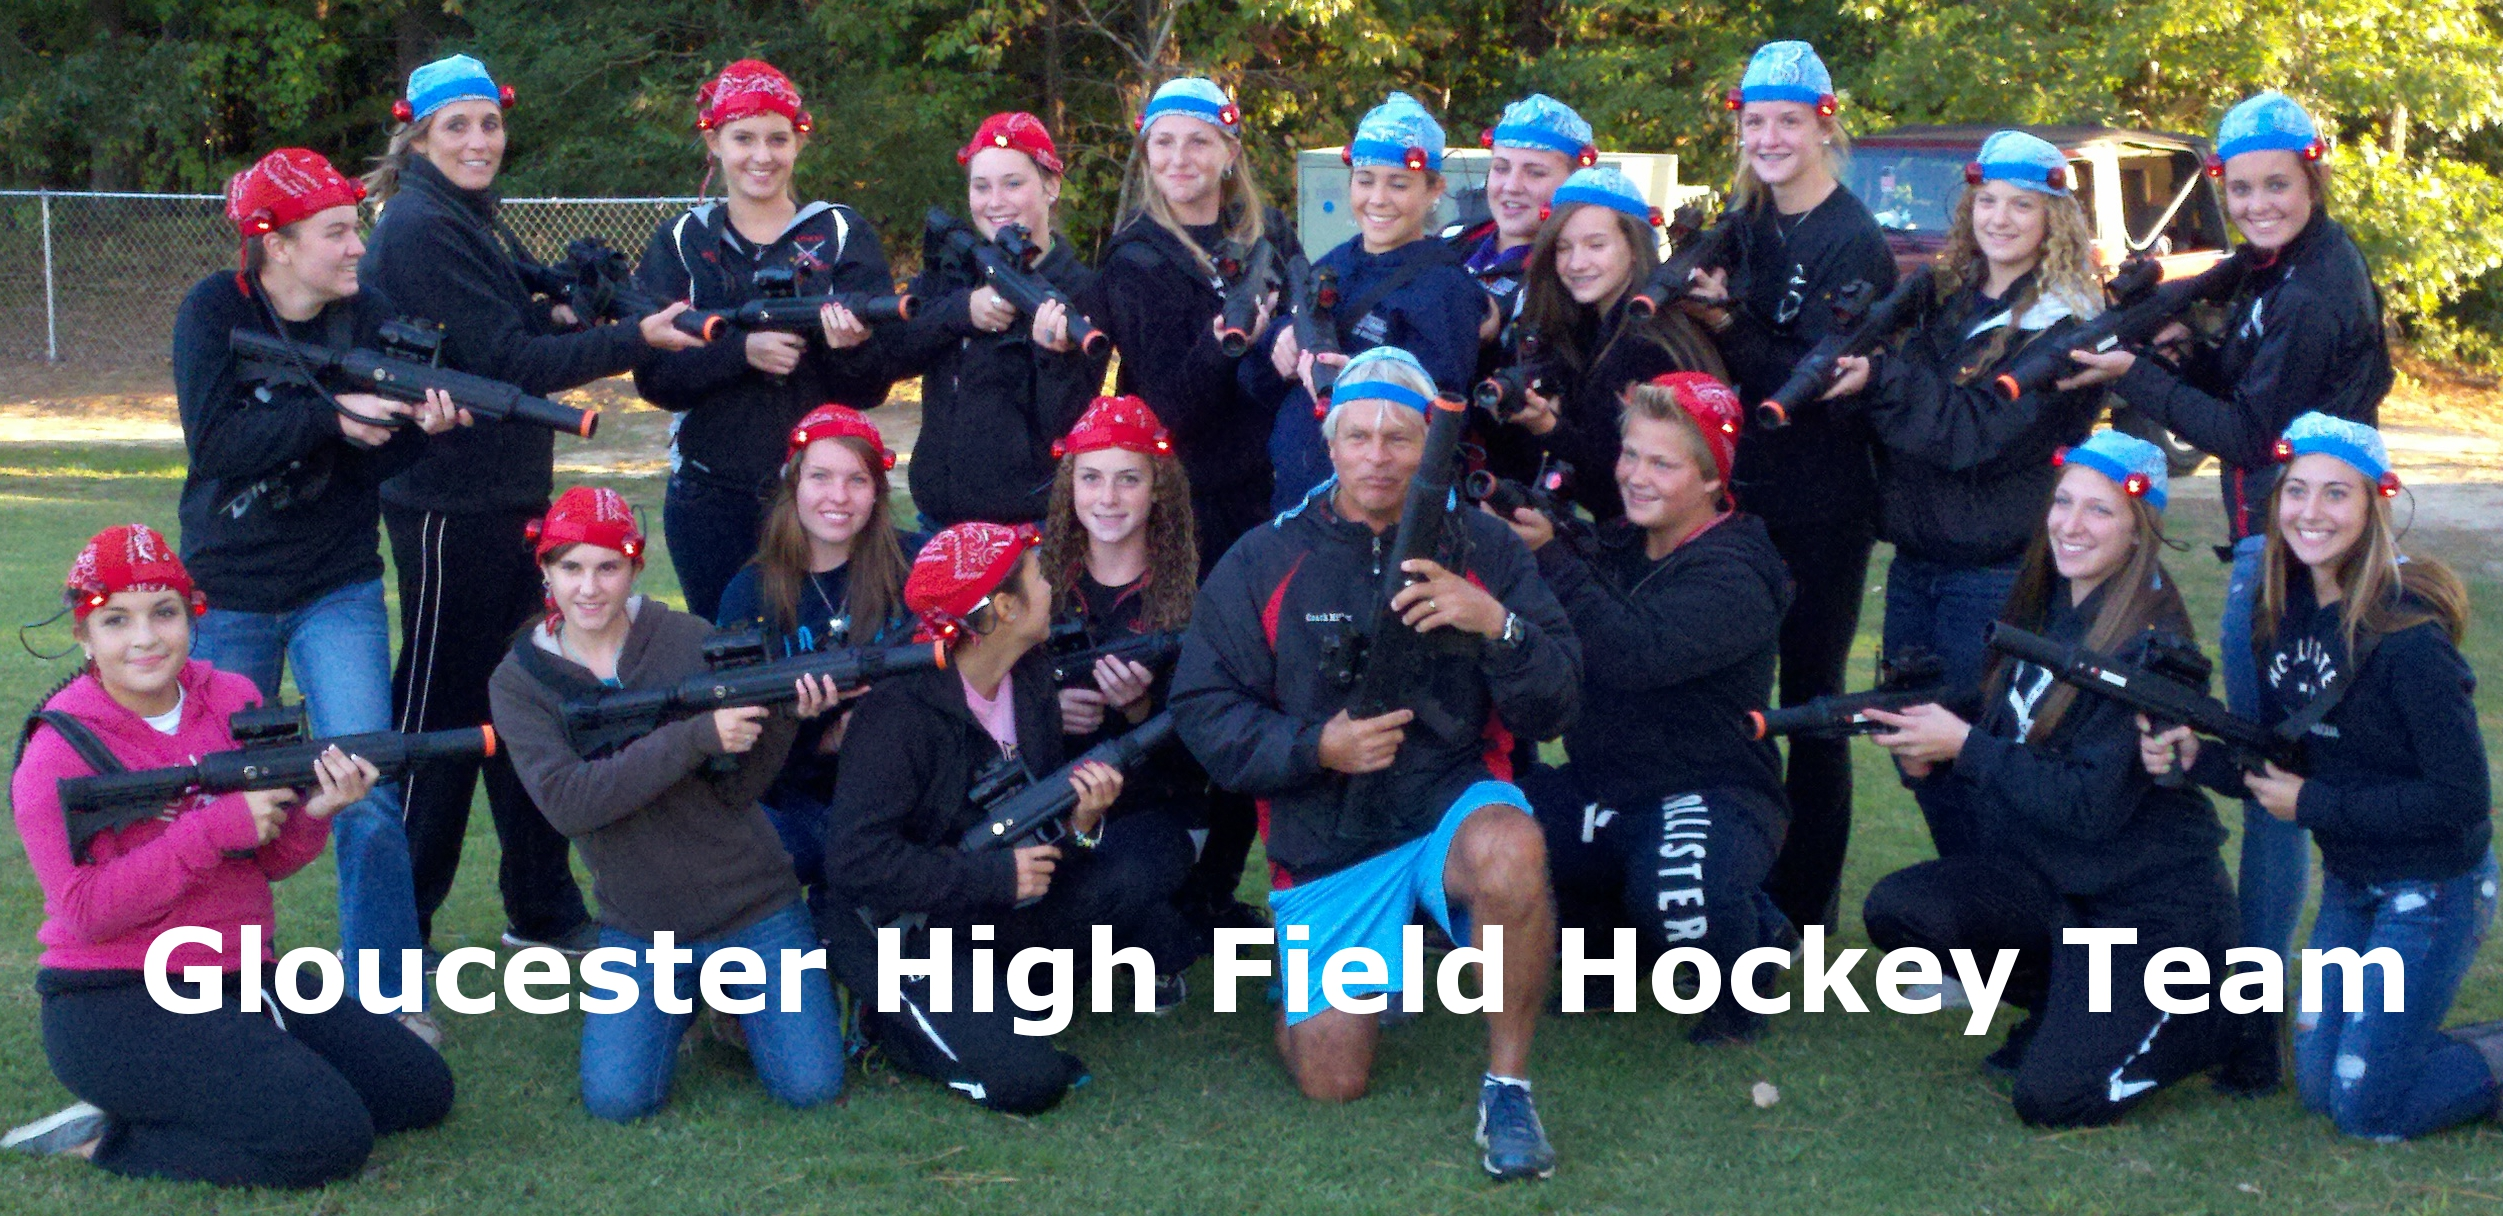 Gloucester High Field Hockey Team